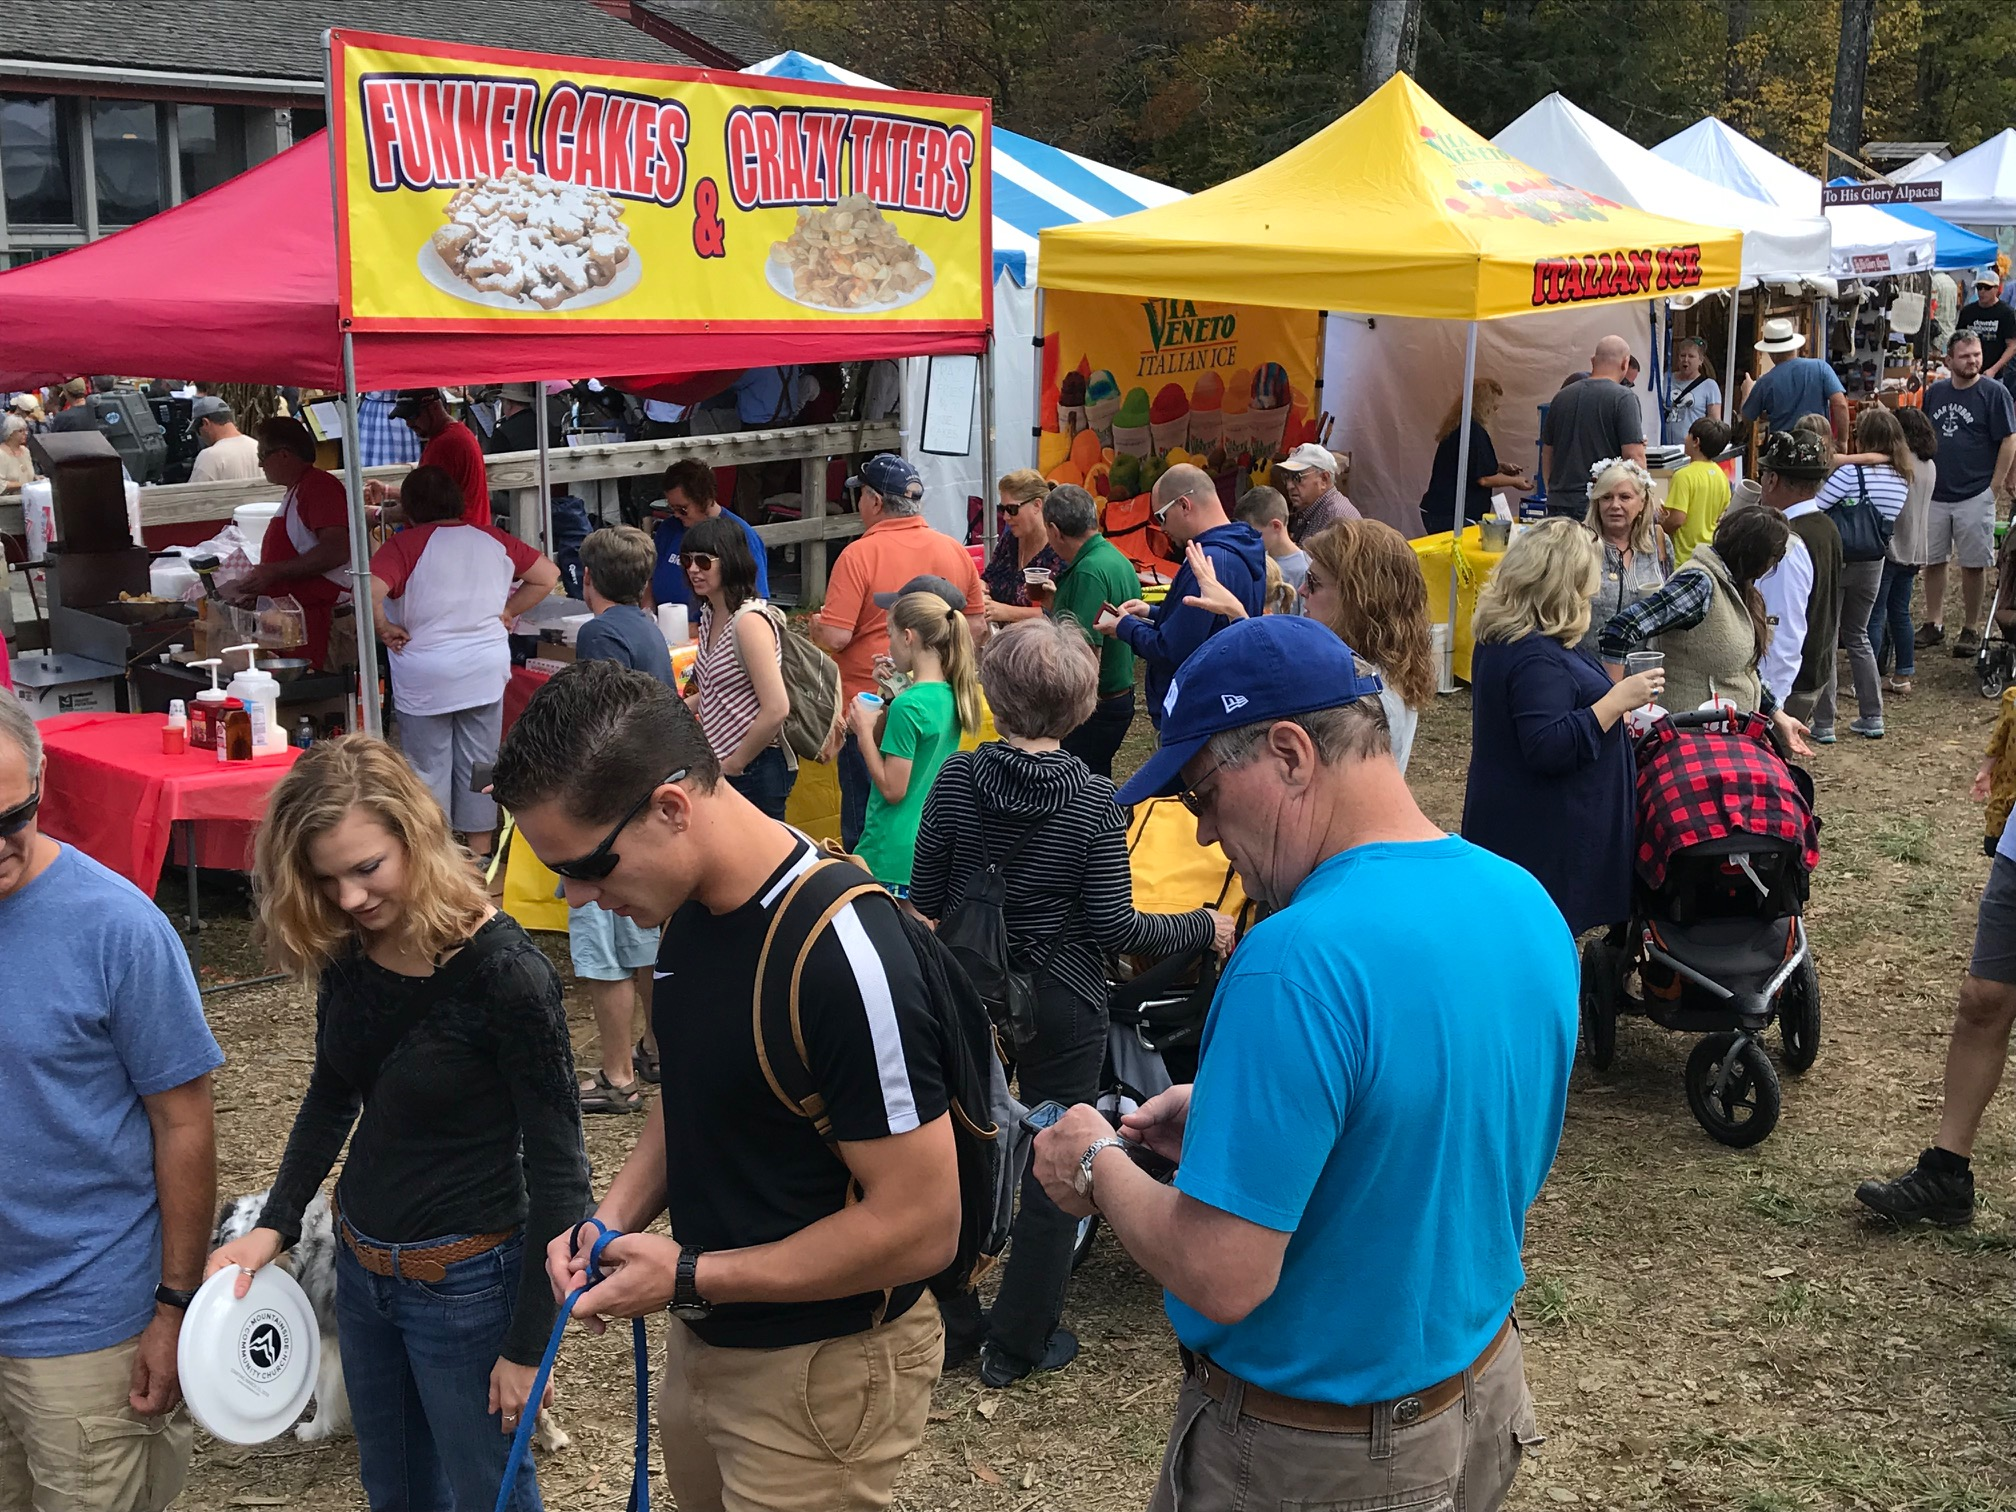 Frisbees were given away at Oktoberfest, New River Fest, Valle Country Fair, and Wooly Worm Festival in two October weekends.